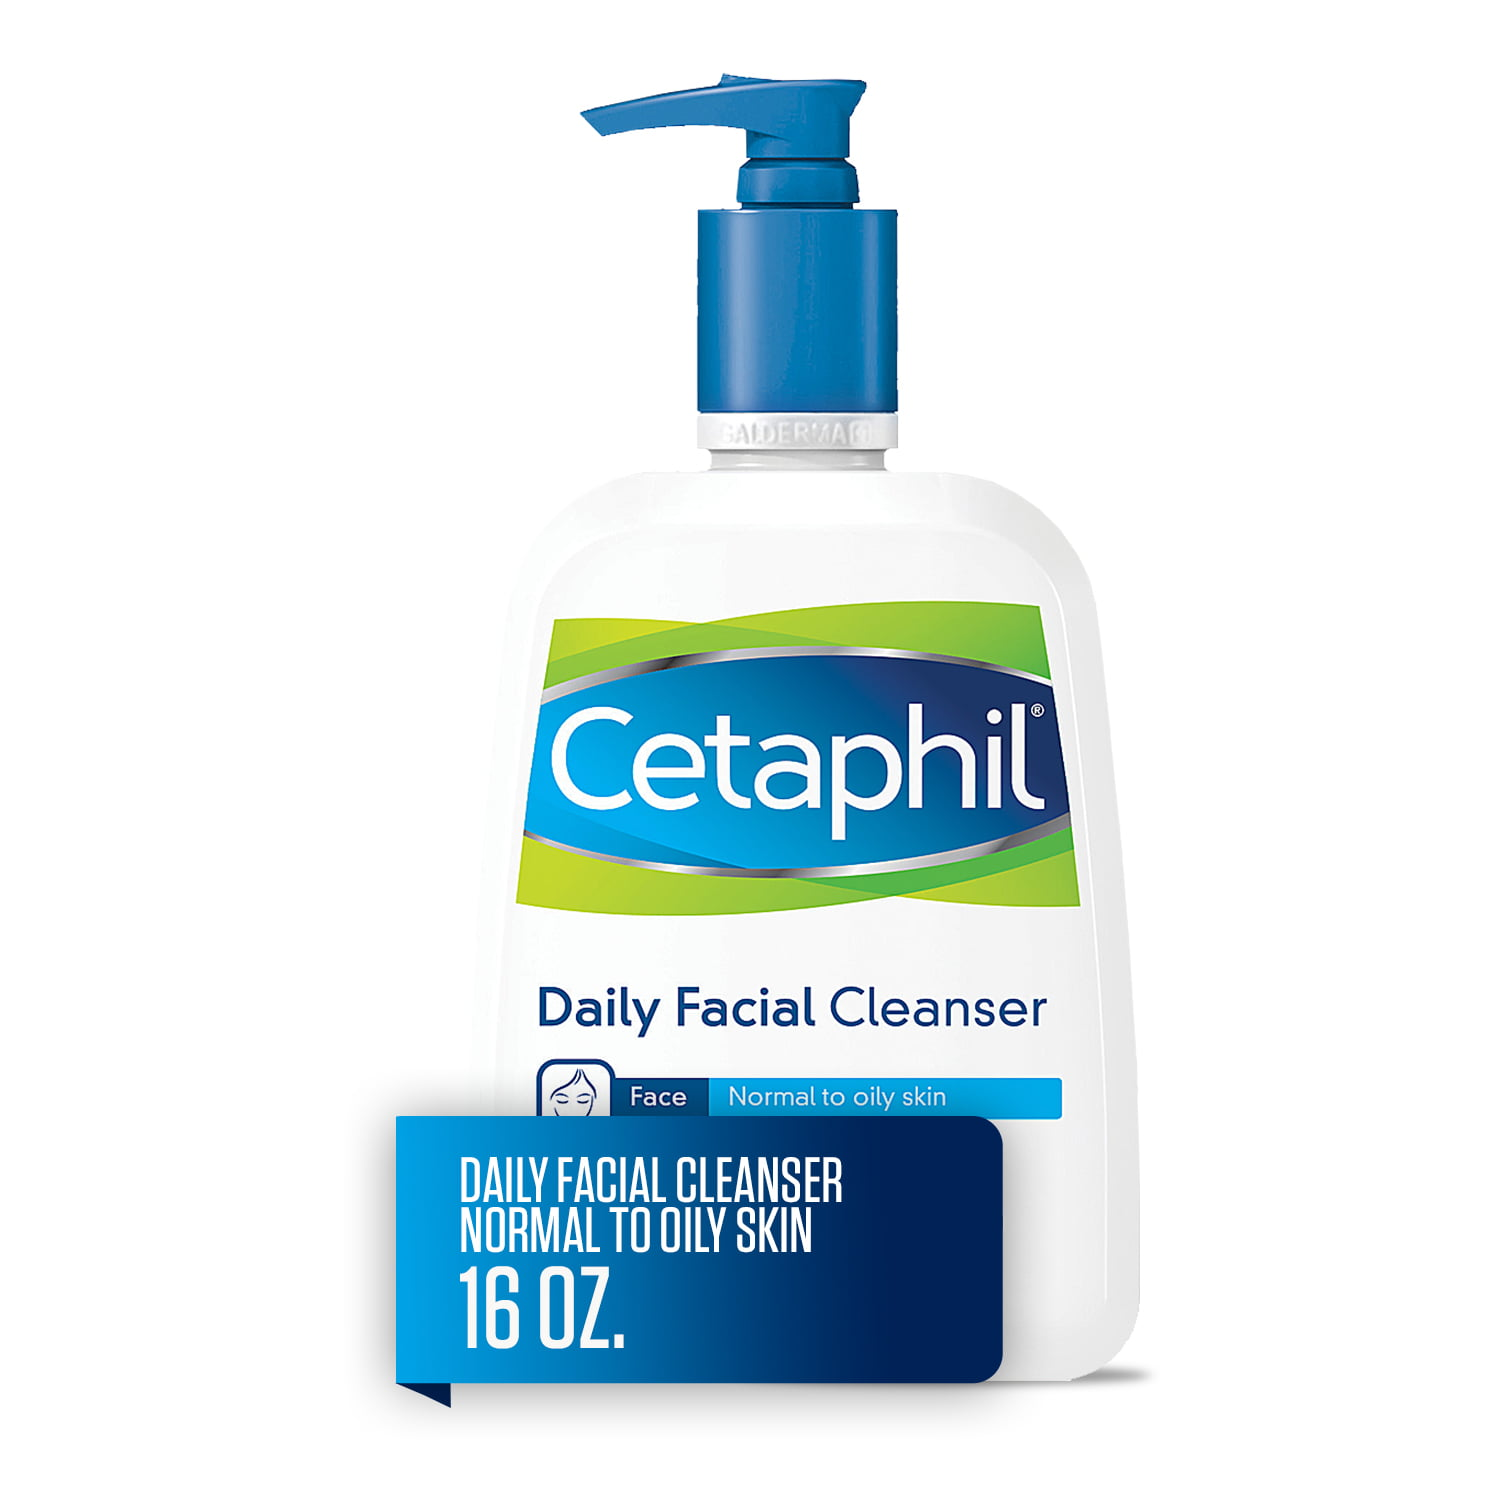 Cetaphil Daily Facial Cleanser Face Wash For Normal To Oily Skin